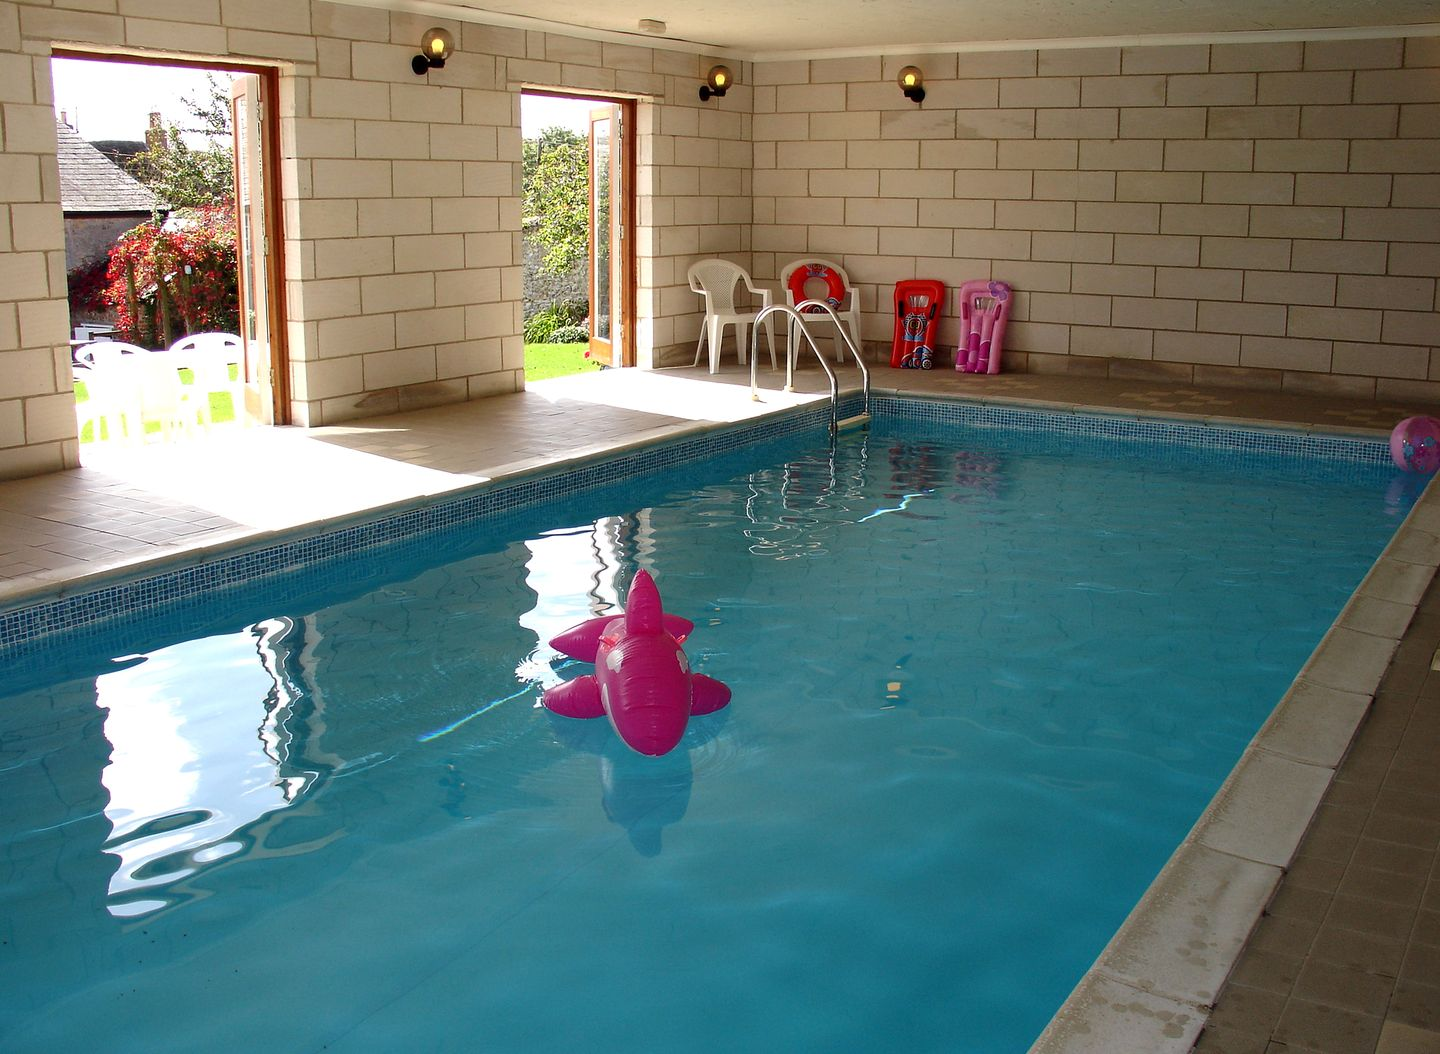 Park farmhouse chideock dorset self catering property - Holidays in dorset with swimming pool ...